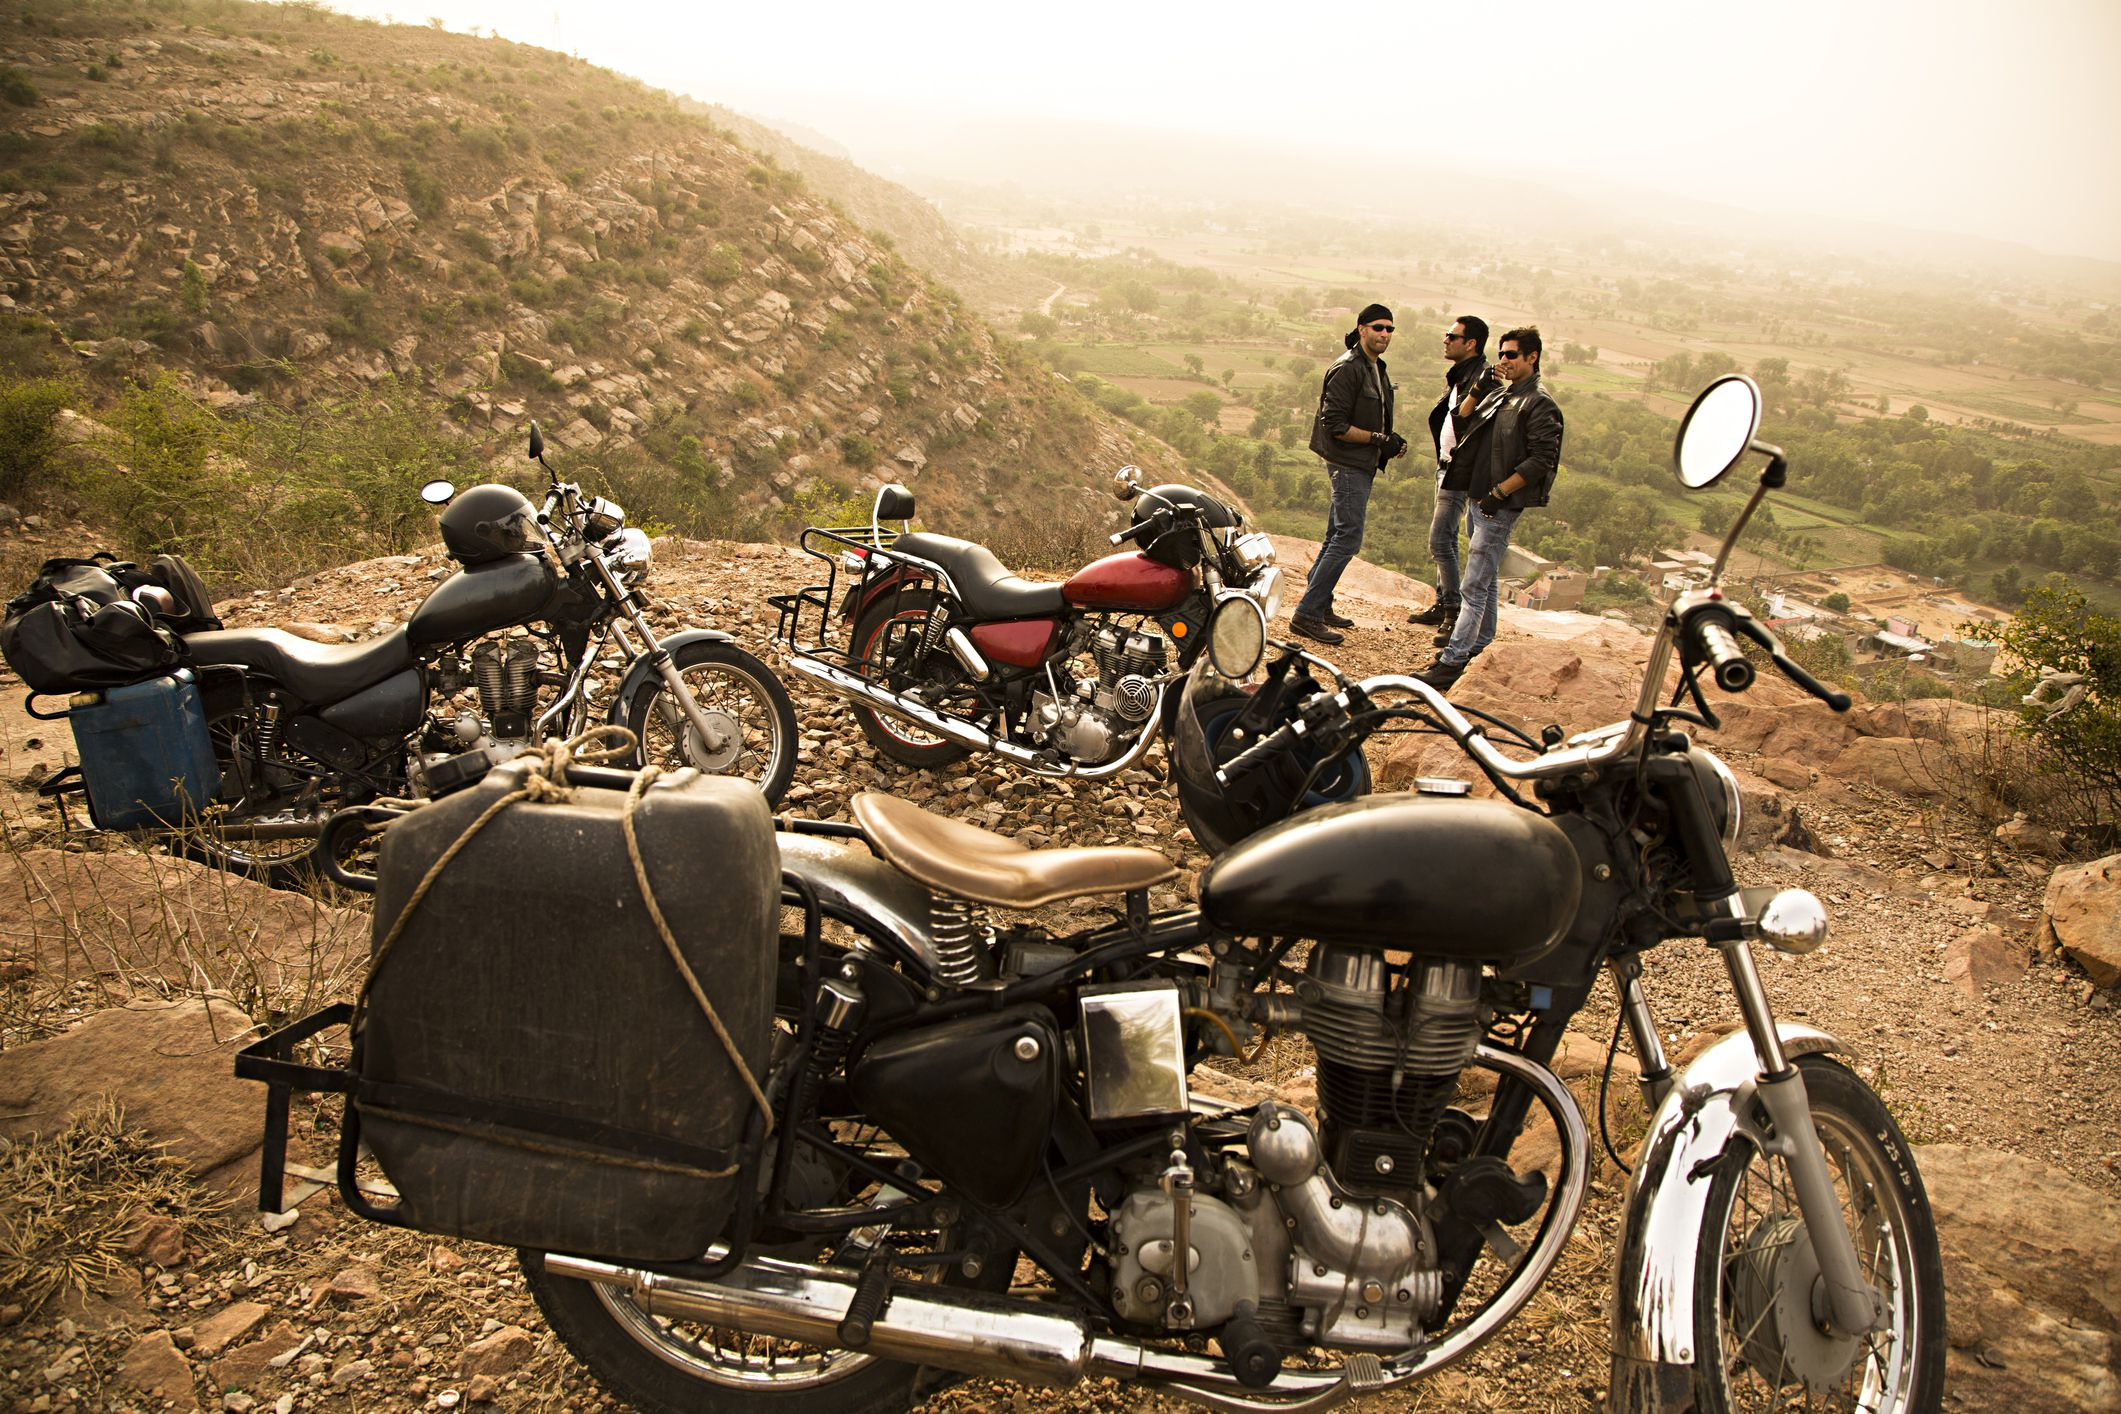 5 Top India Motorcycle Tour Destinations And Tours